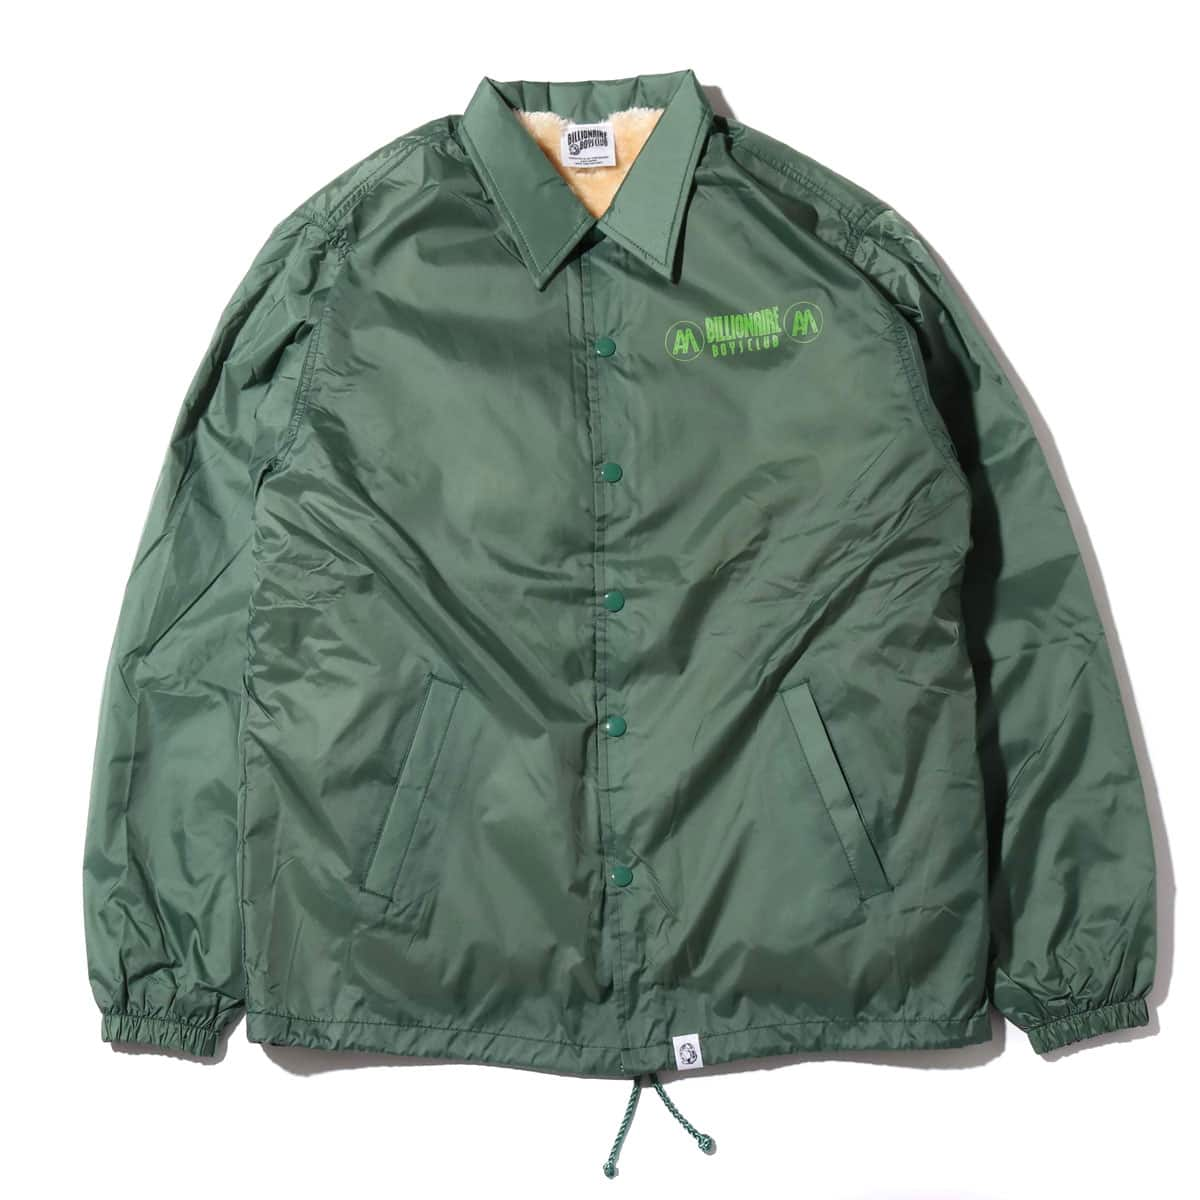 BILLIONAIRE BOYS CLUB x AH MURDERZ BOA COACH JACKET  GREEN 18FA-S_photo_large